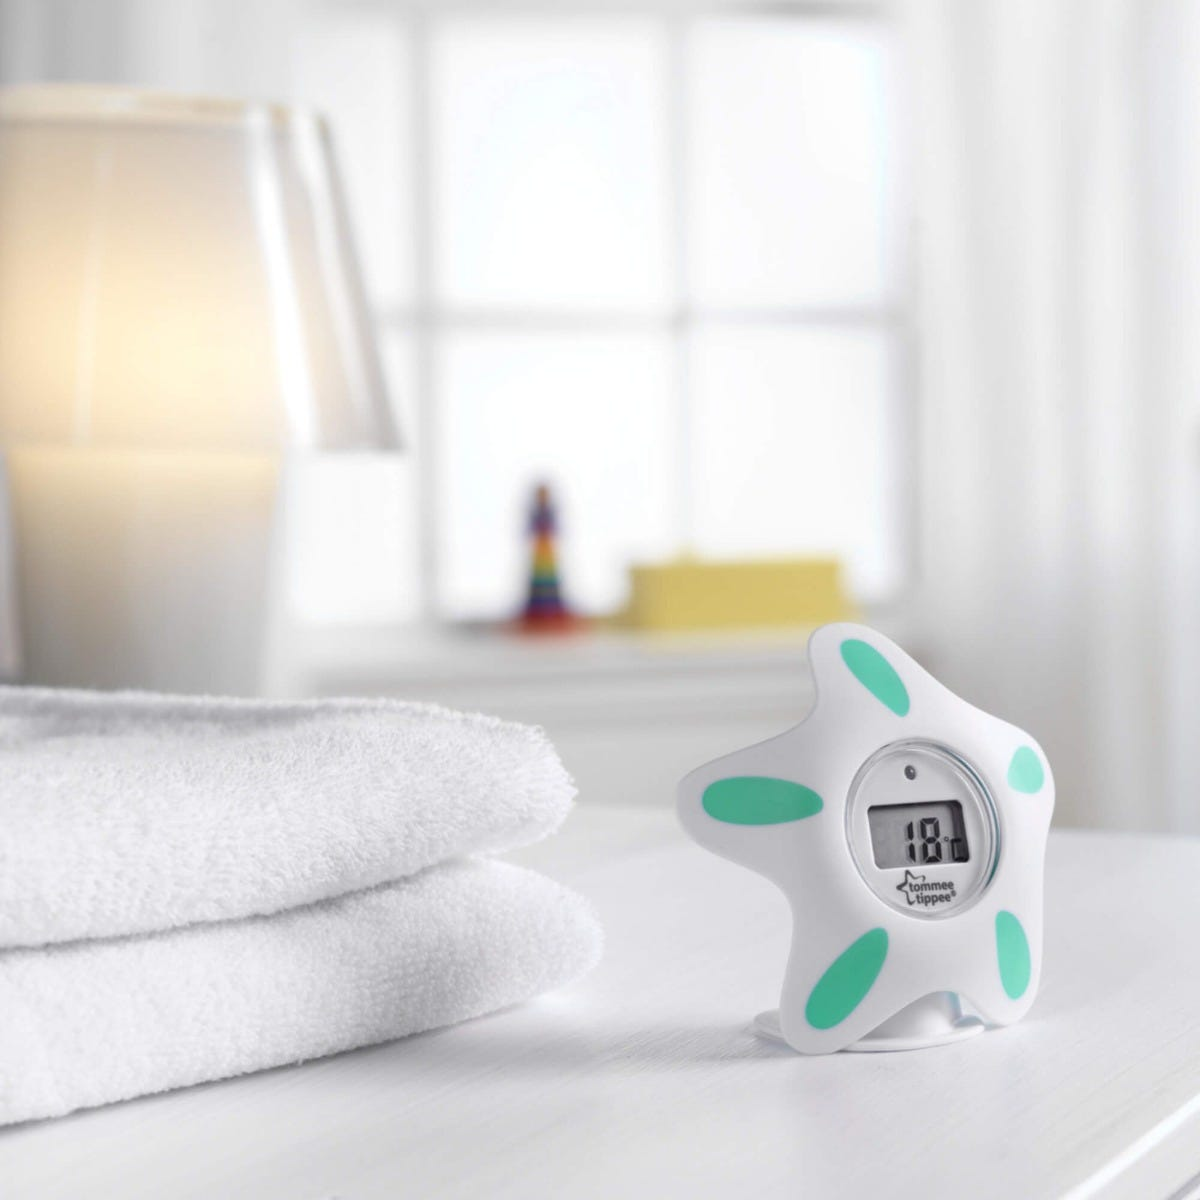 bath-and-room-thermometer-standing-on-ledge-in-bathroom